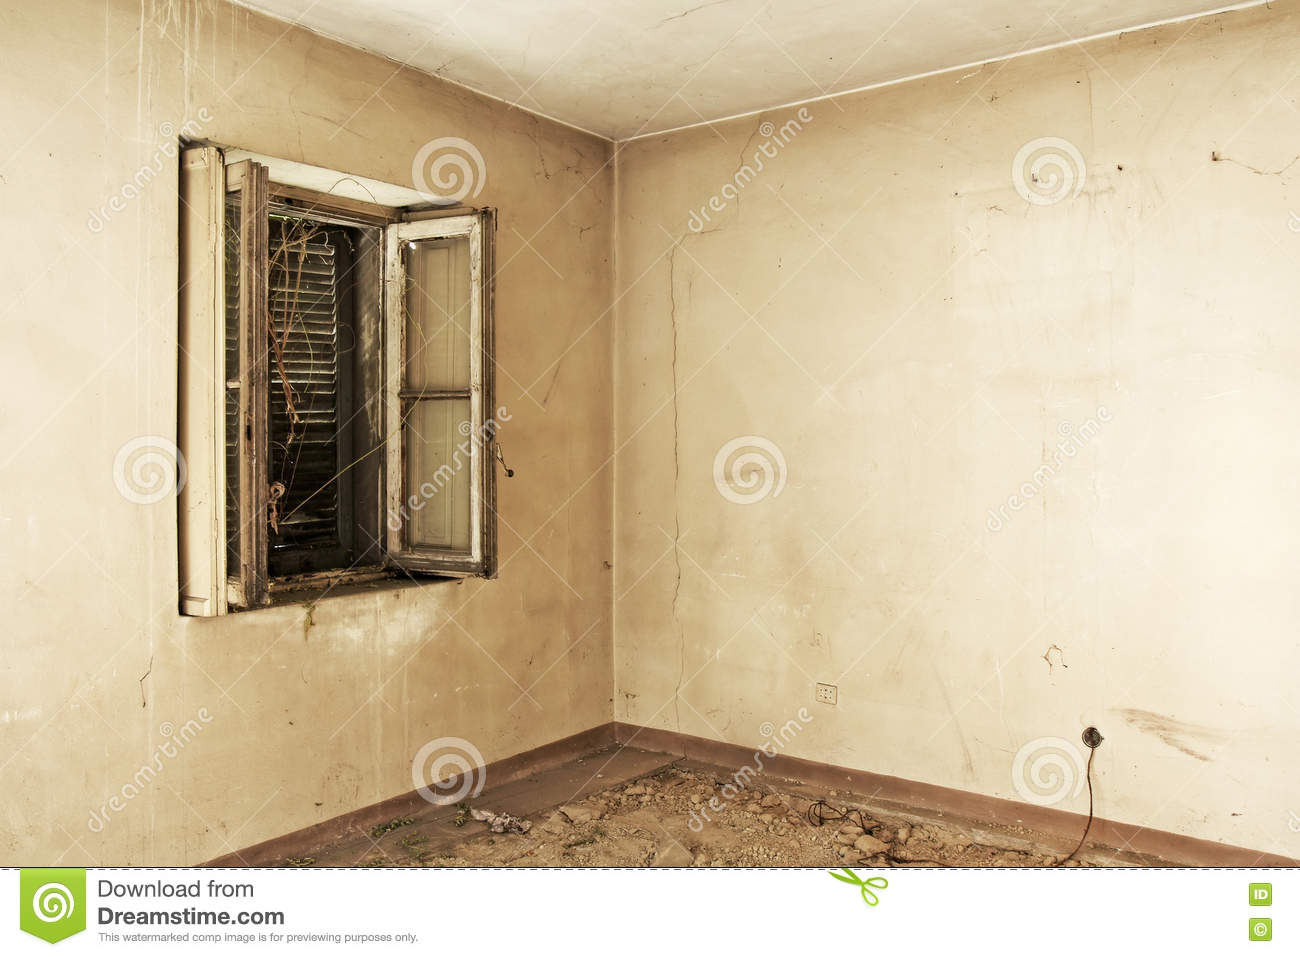 Ruined And Empty Home Interiors Stock Image - Image of destroyed ...